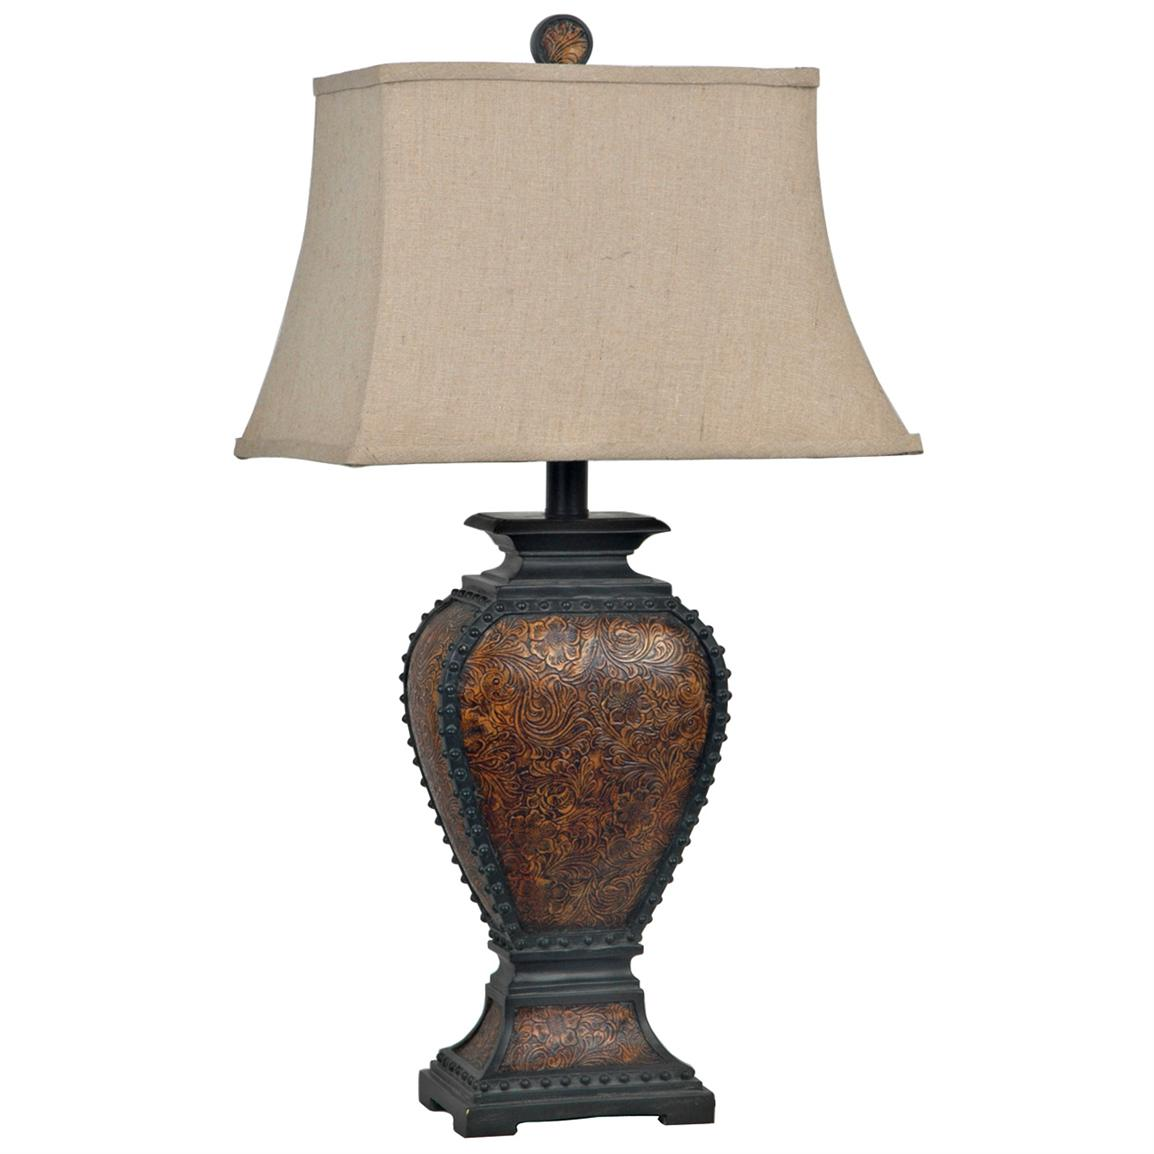 Crestview® Tooled Leather Table Lamp